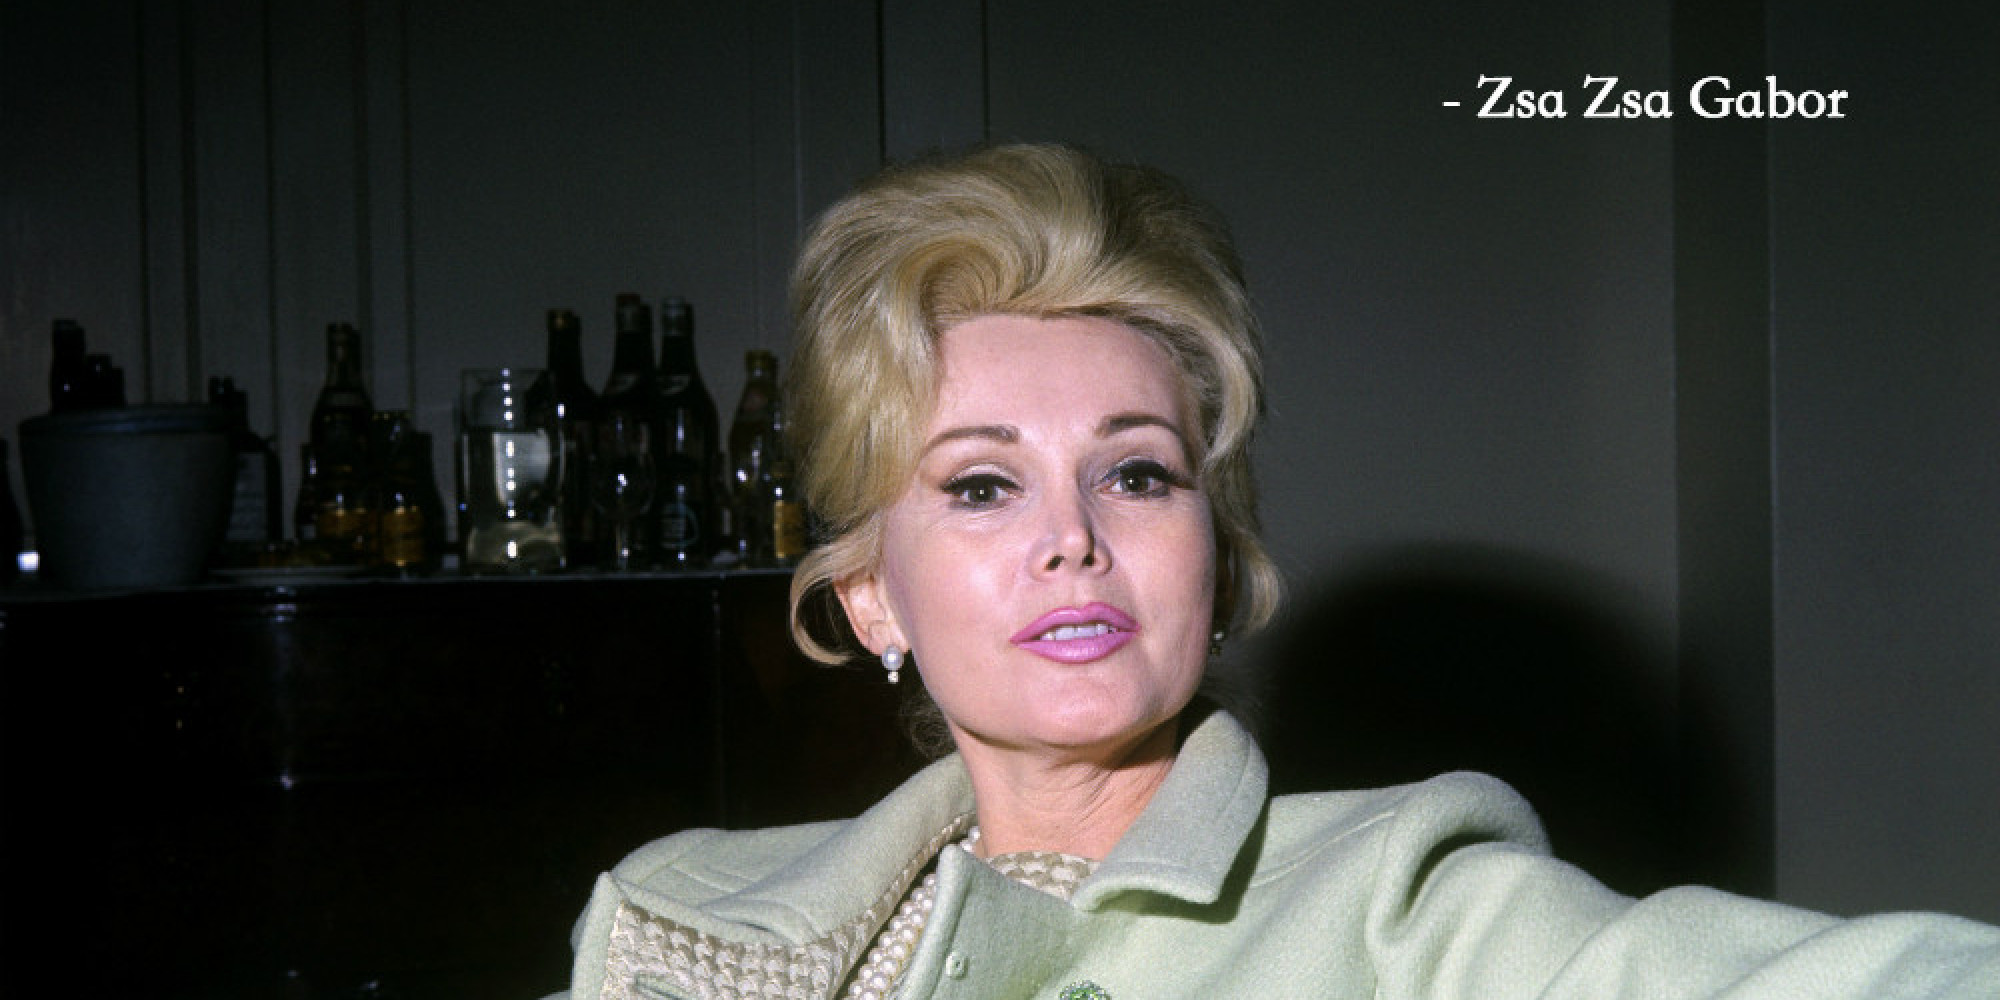 Zsa Zsa Gabor Quotes Love Quotes Zsa Zsa Gabor  Quotes